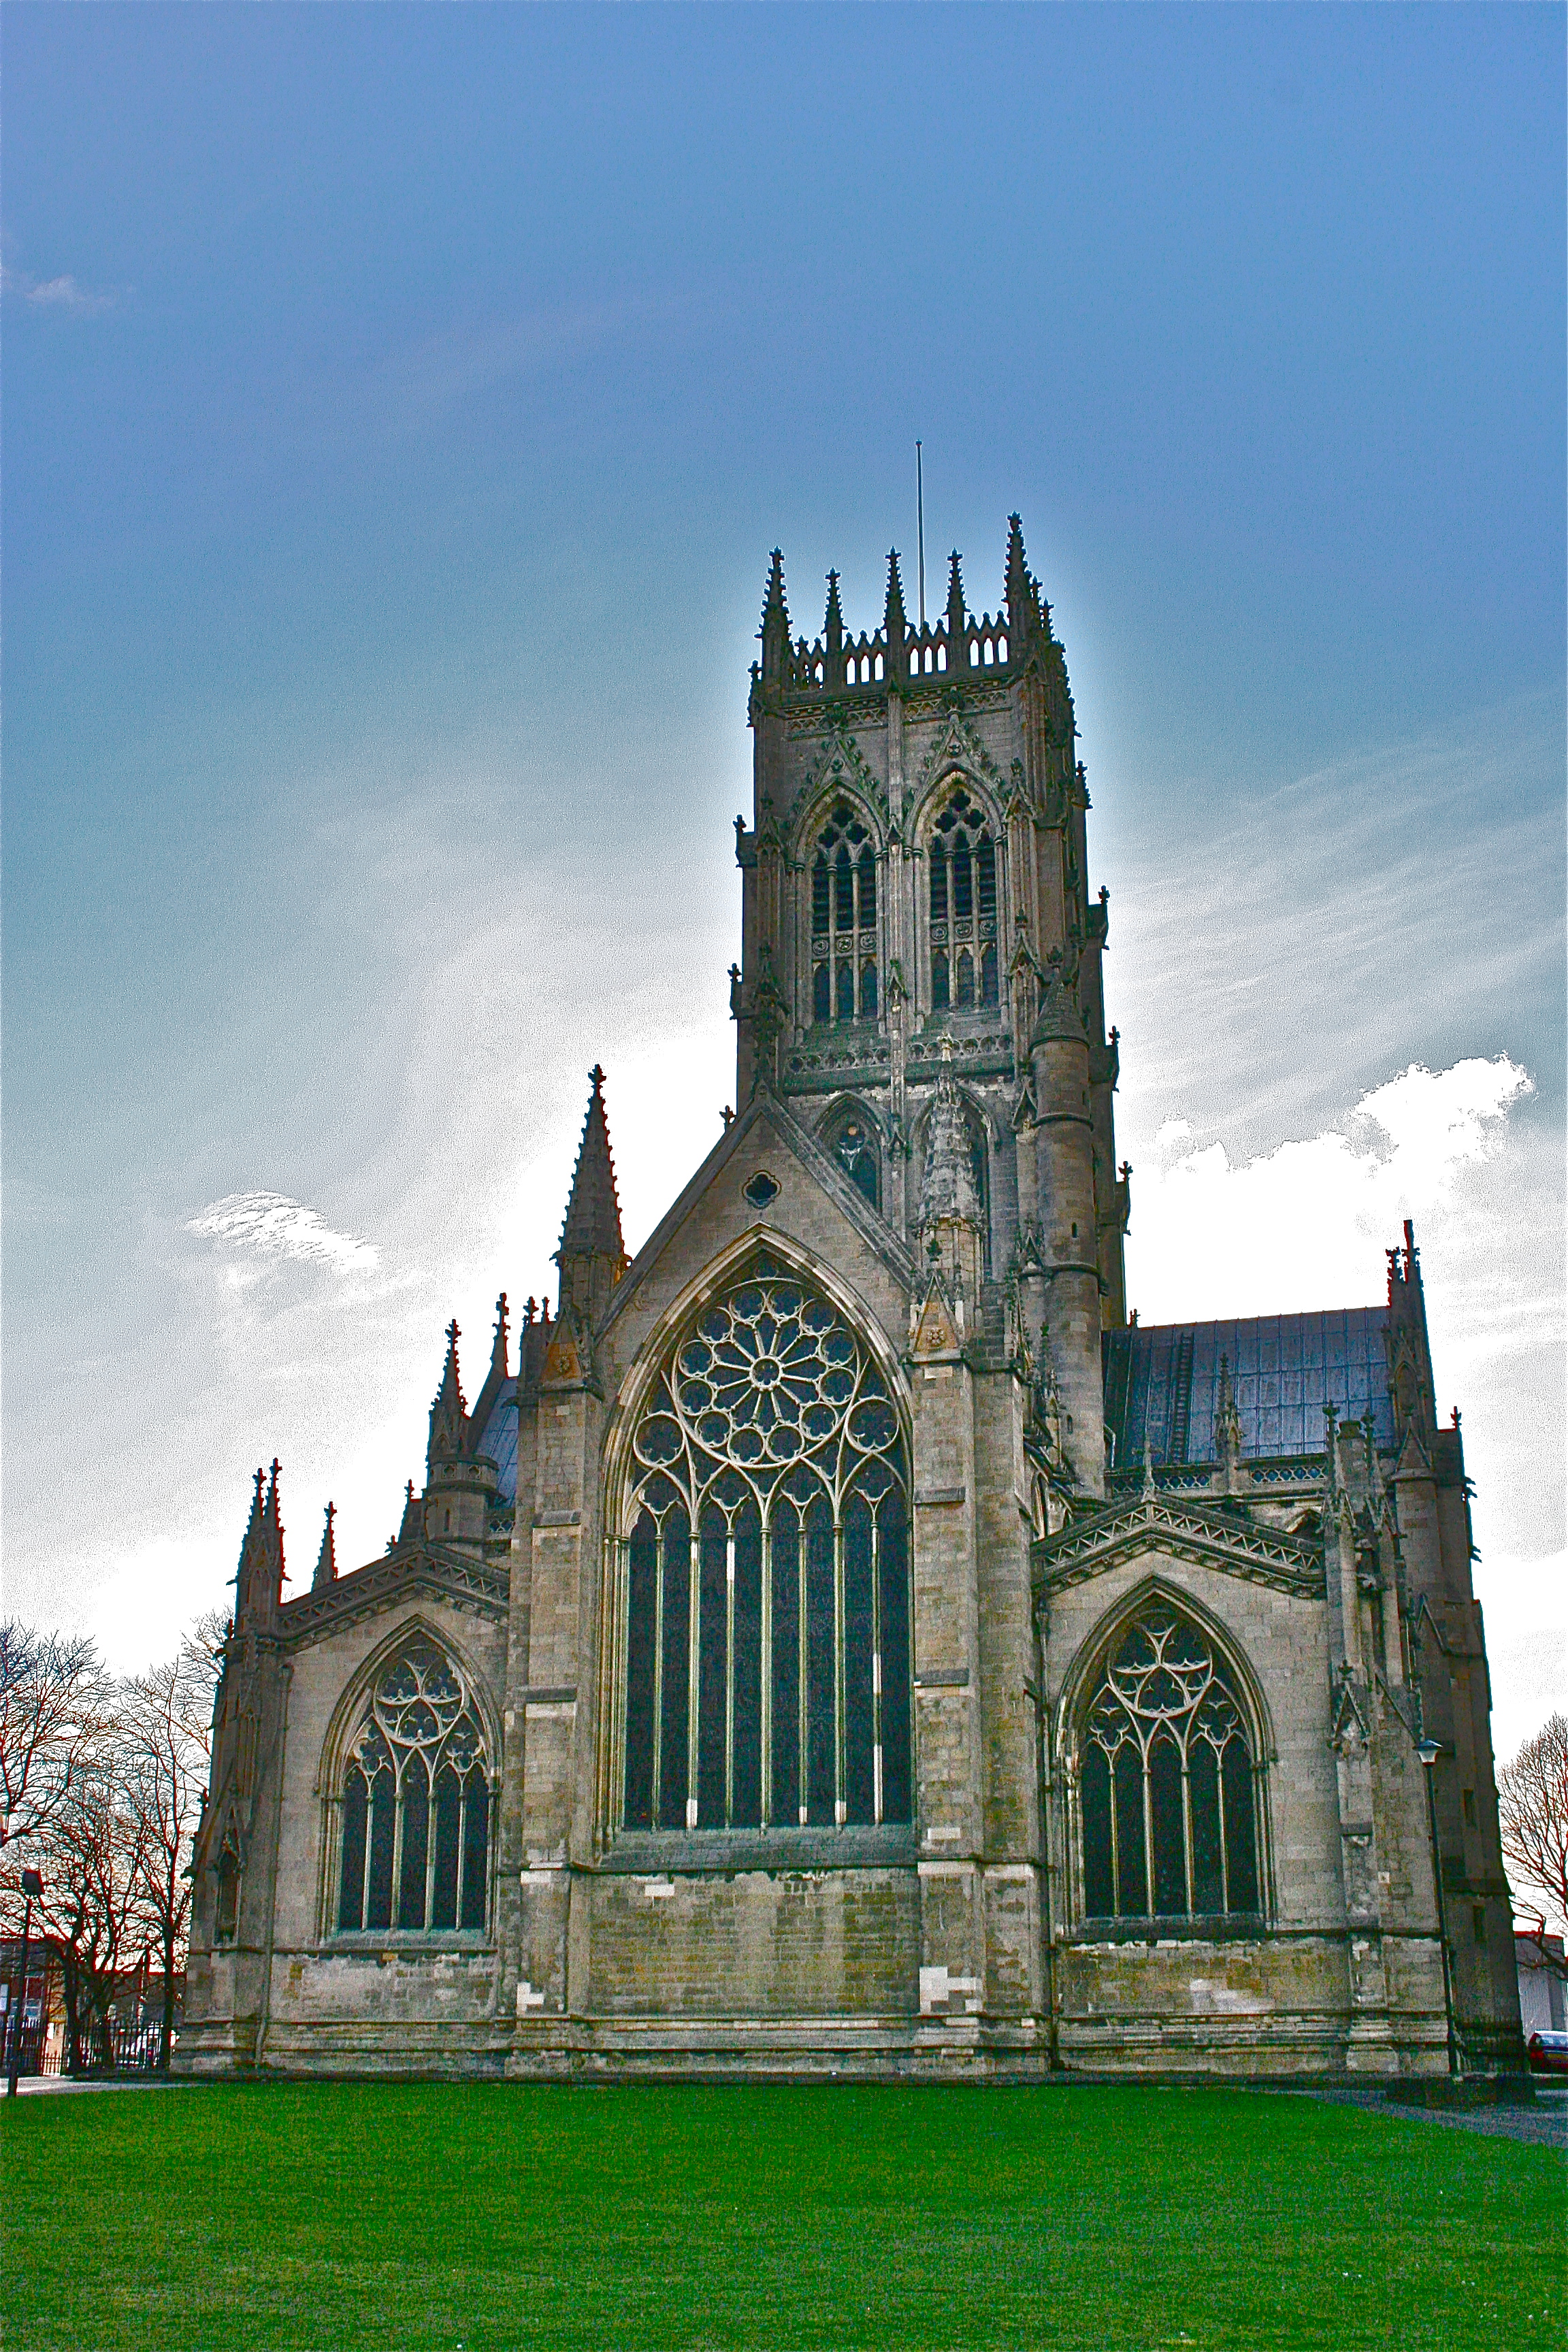 Doncaster Minster from the East Lawn